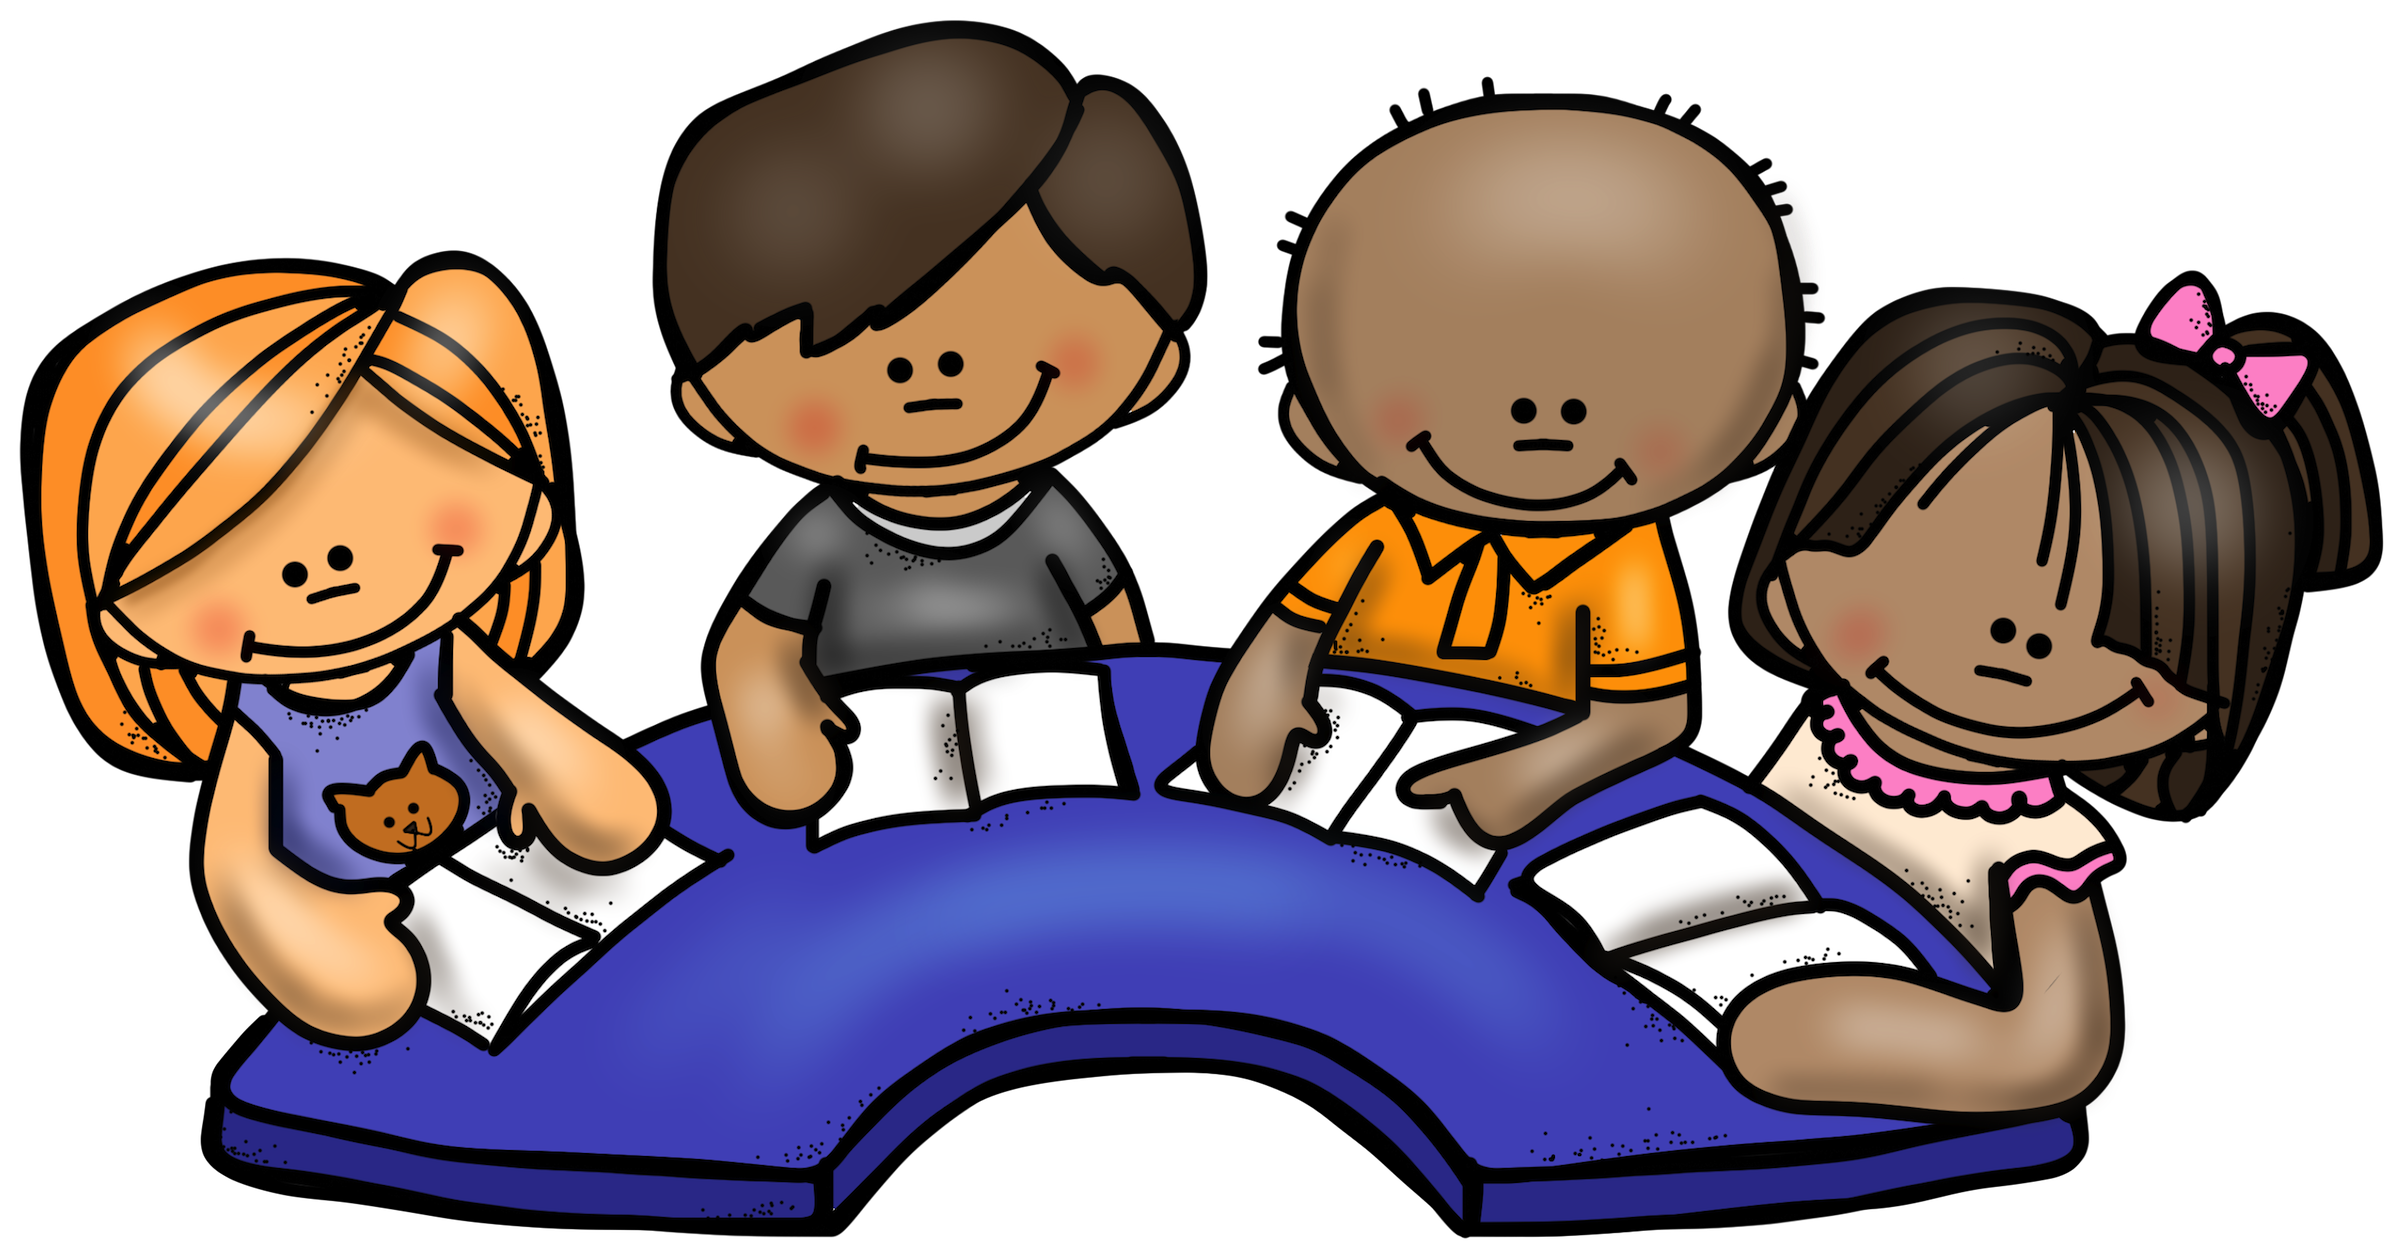 Literacy clipart small group, Literacy small group Transparent FREE.